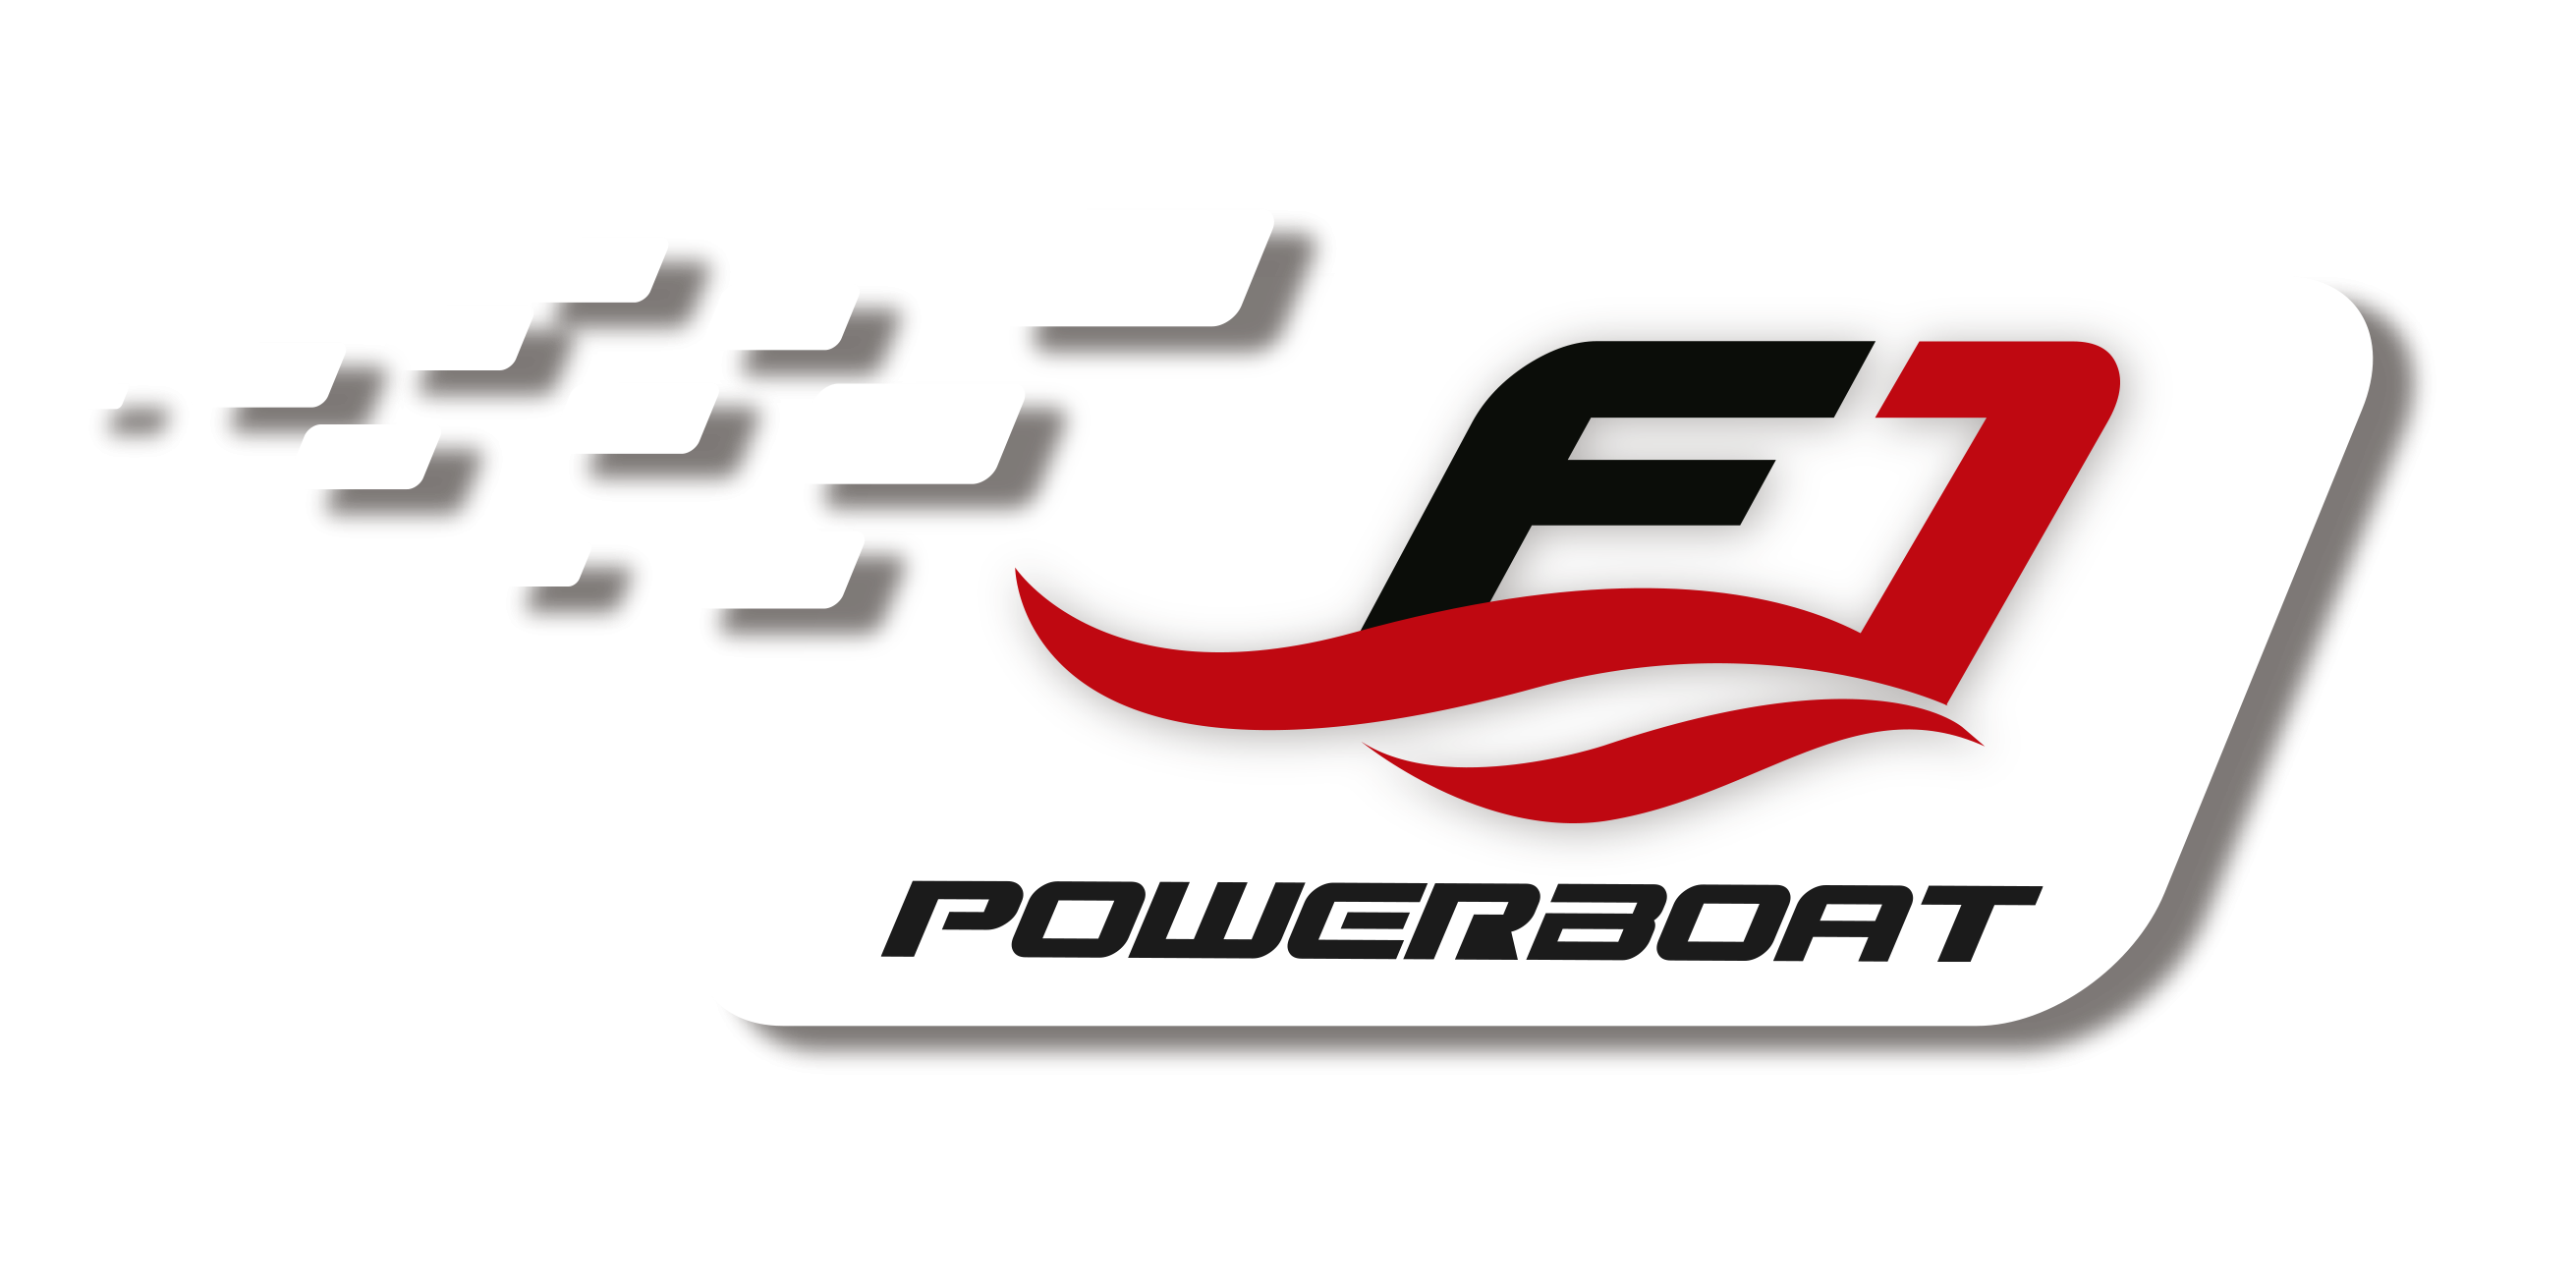 Sitio Oficial de la F1 Powerboat